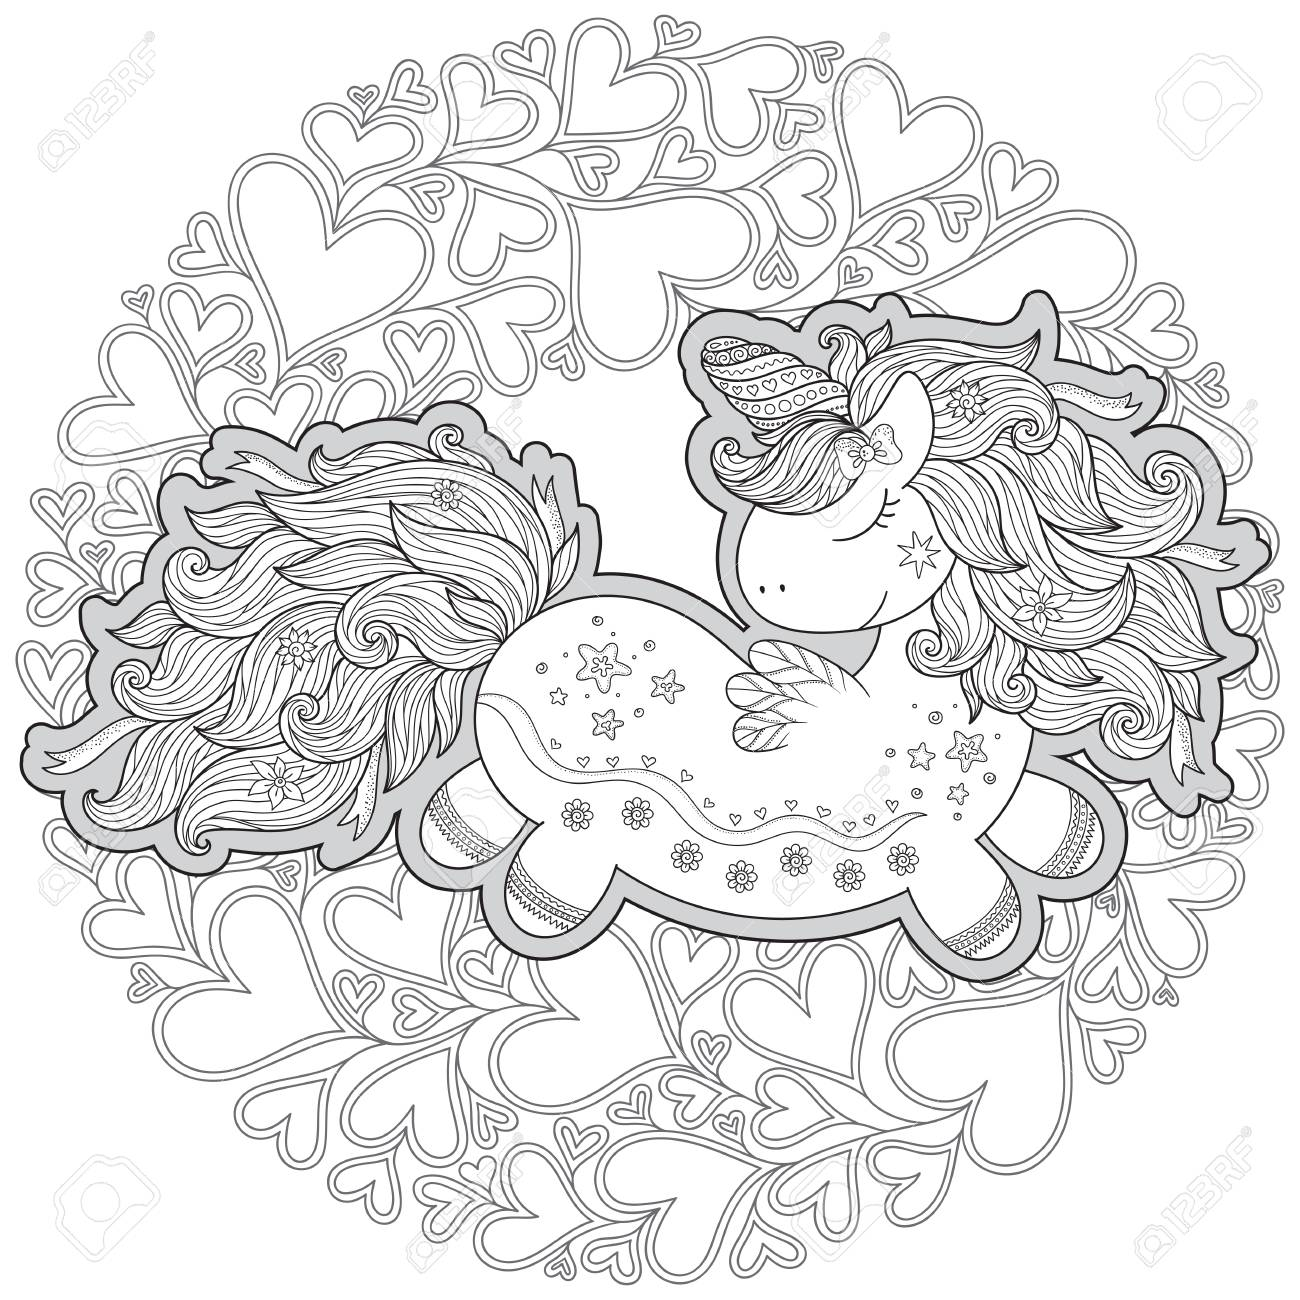 Unicorn In Hearts Coloring Book For Adult And Older Children Royalty Free Cliparts Vectors And Stock Illustration Image 127175344